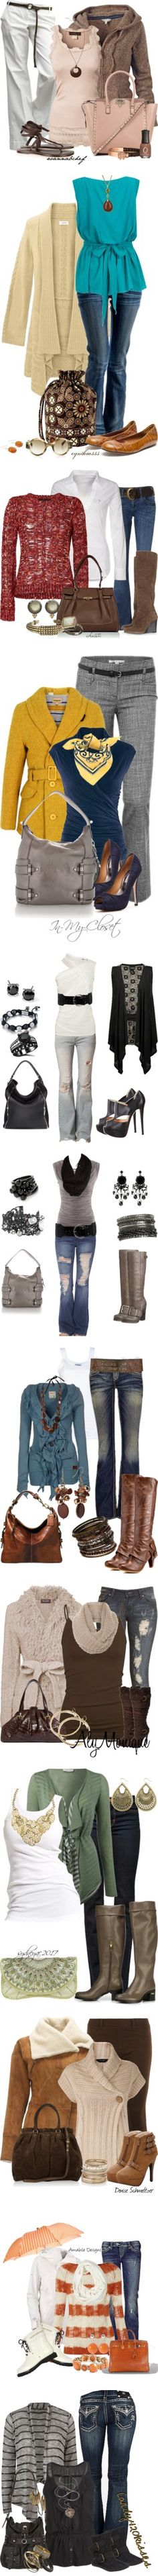 """Outfits I love"" by addisonhouston ❤ liked on Polyvore. I LOVE them all too!!"